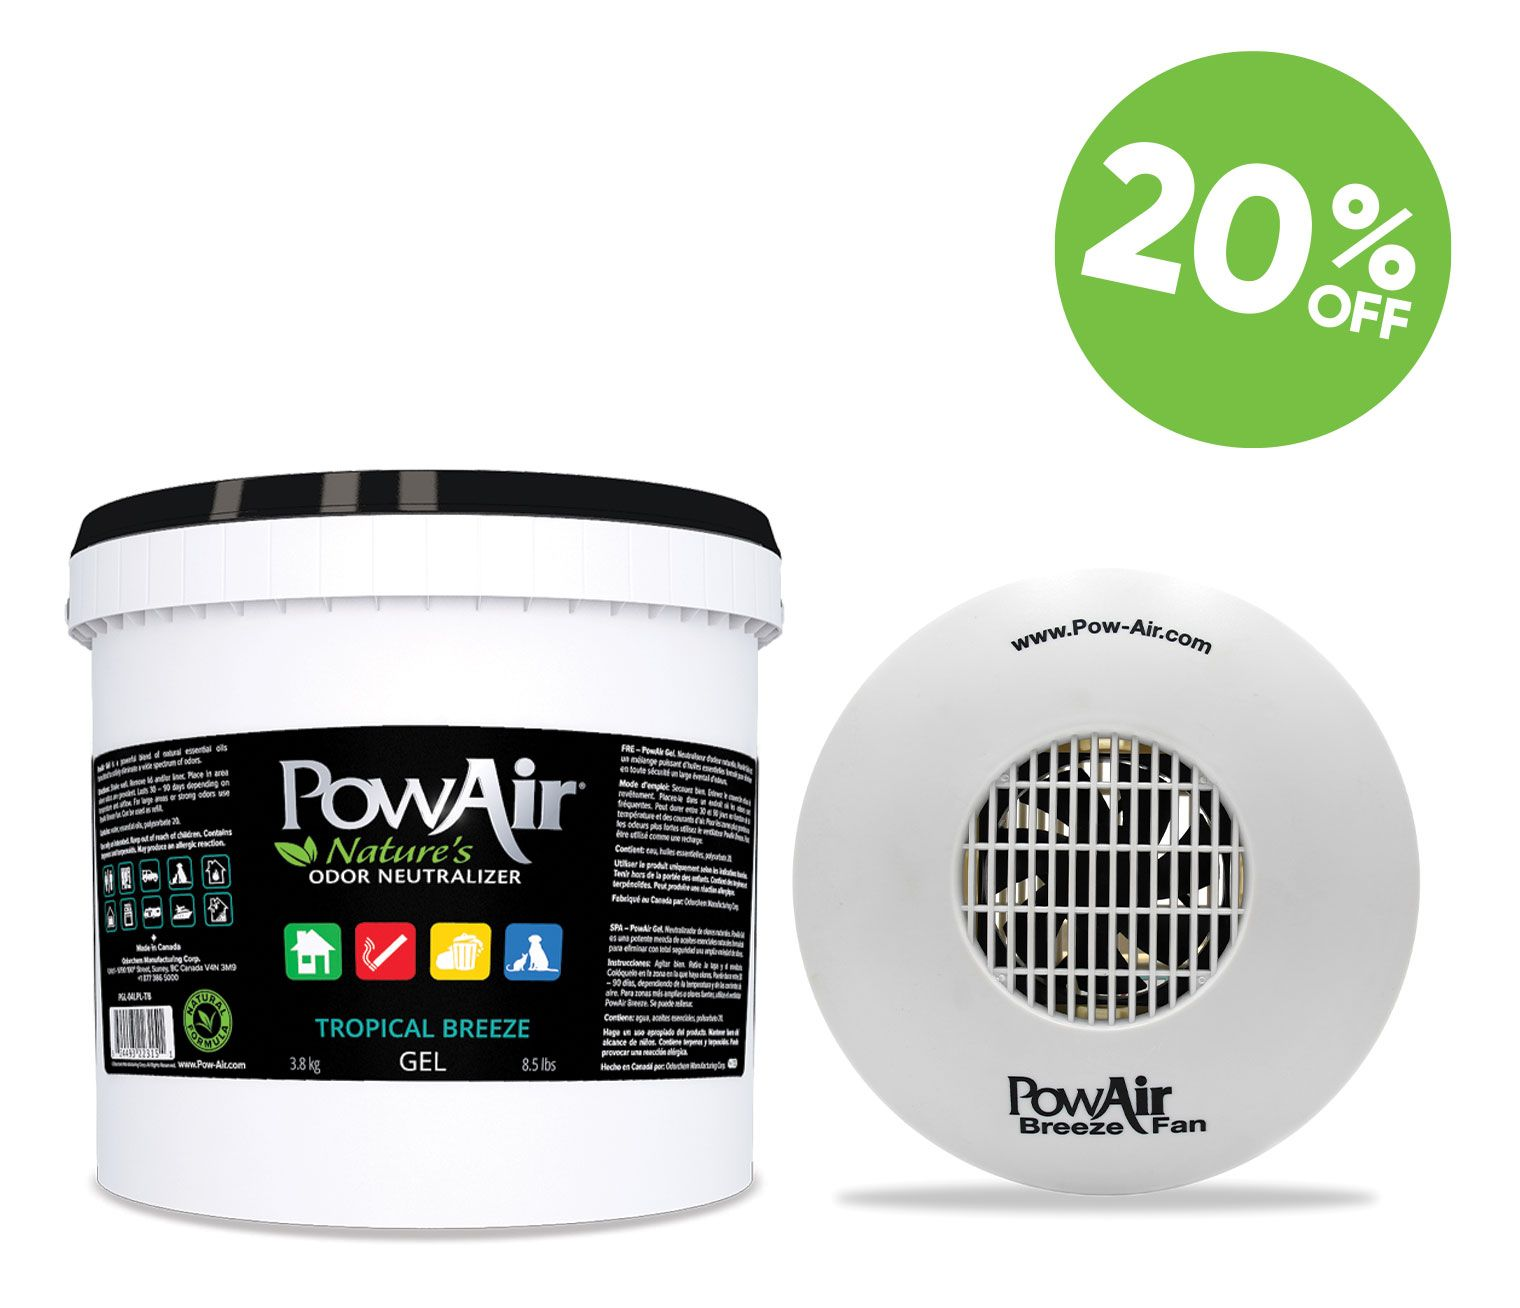 PowAir-Breeze-Bundle-3.8-compressor